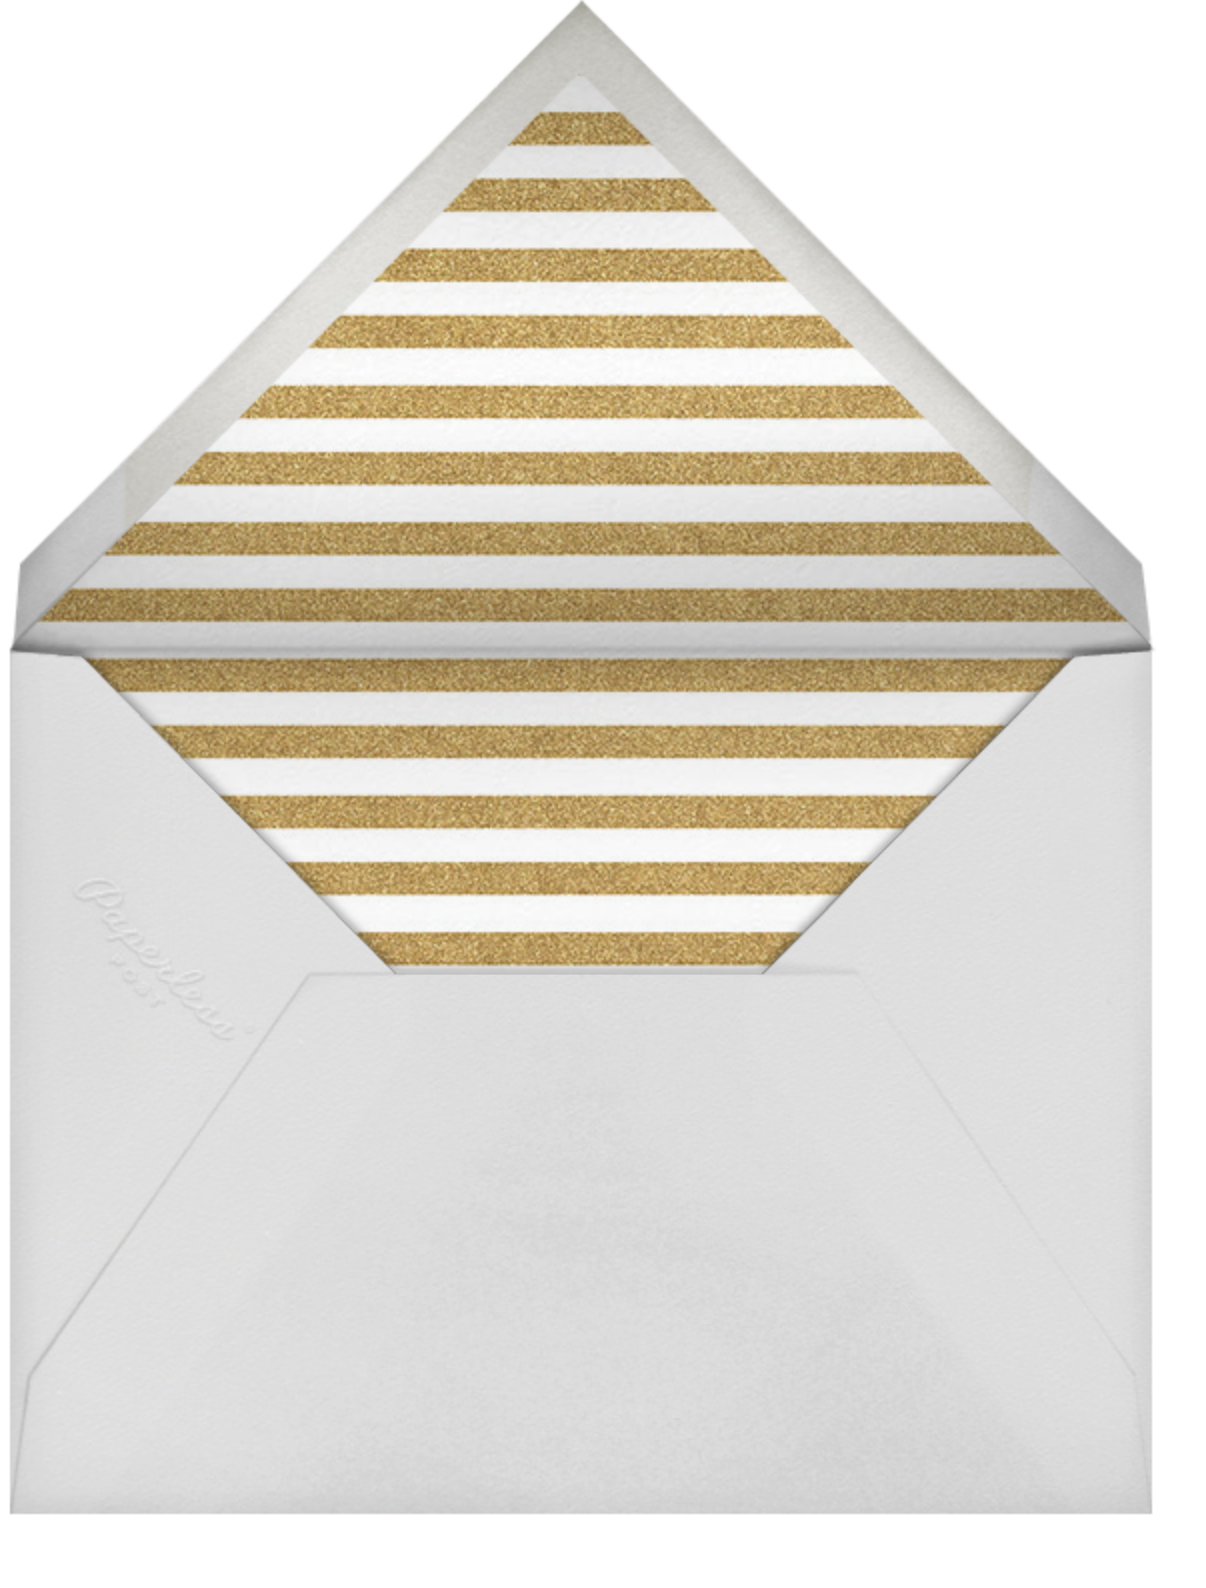 Gold & Silver Confetti - The Indigo Bunting - Adult birthday - envelope back